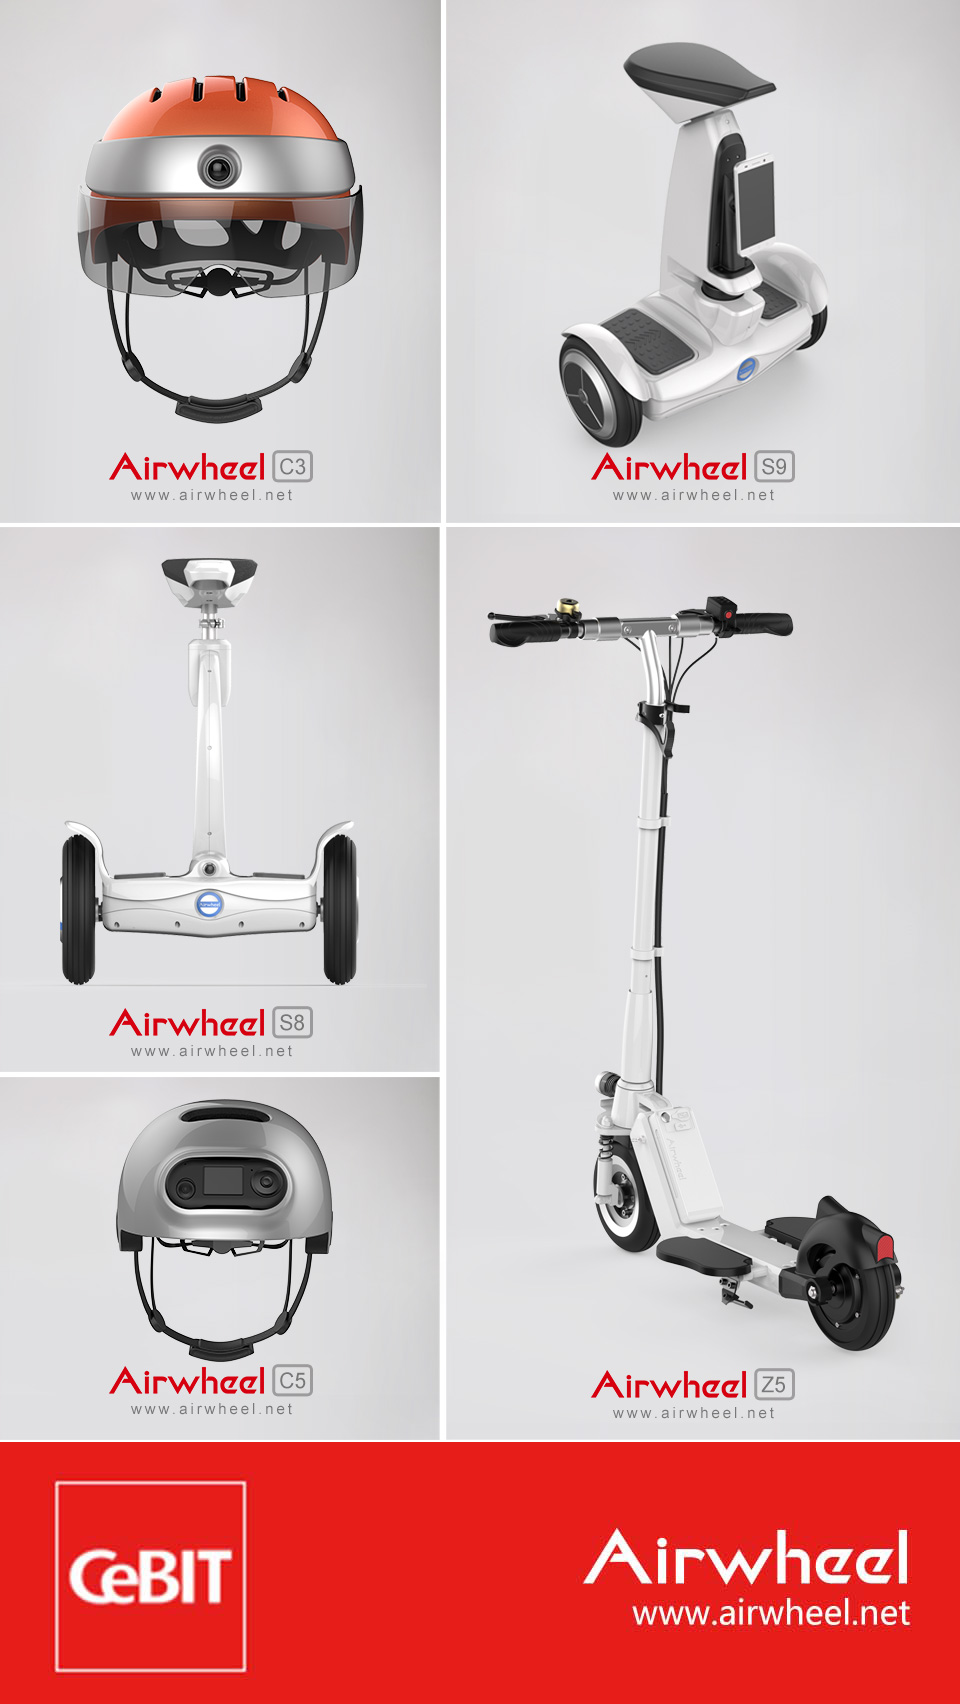 airwheel_cebit_scooter